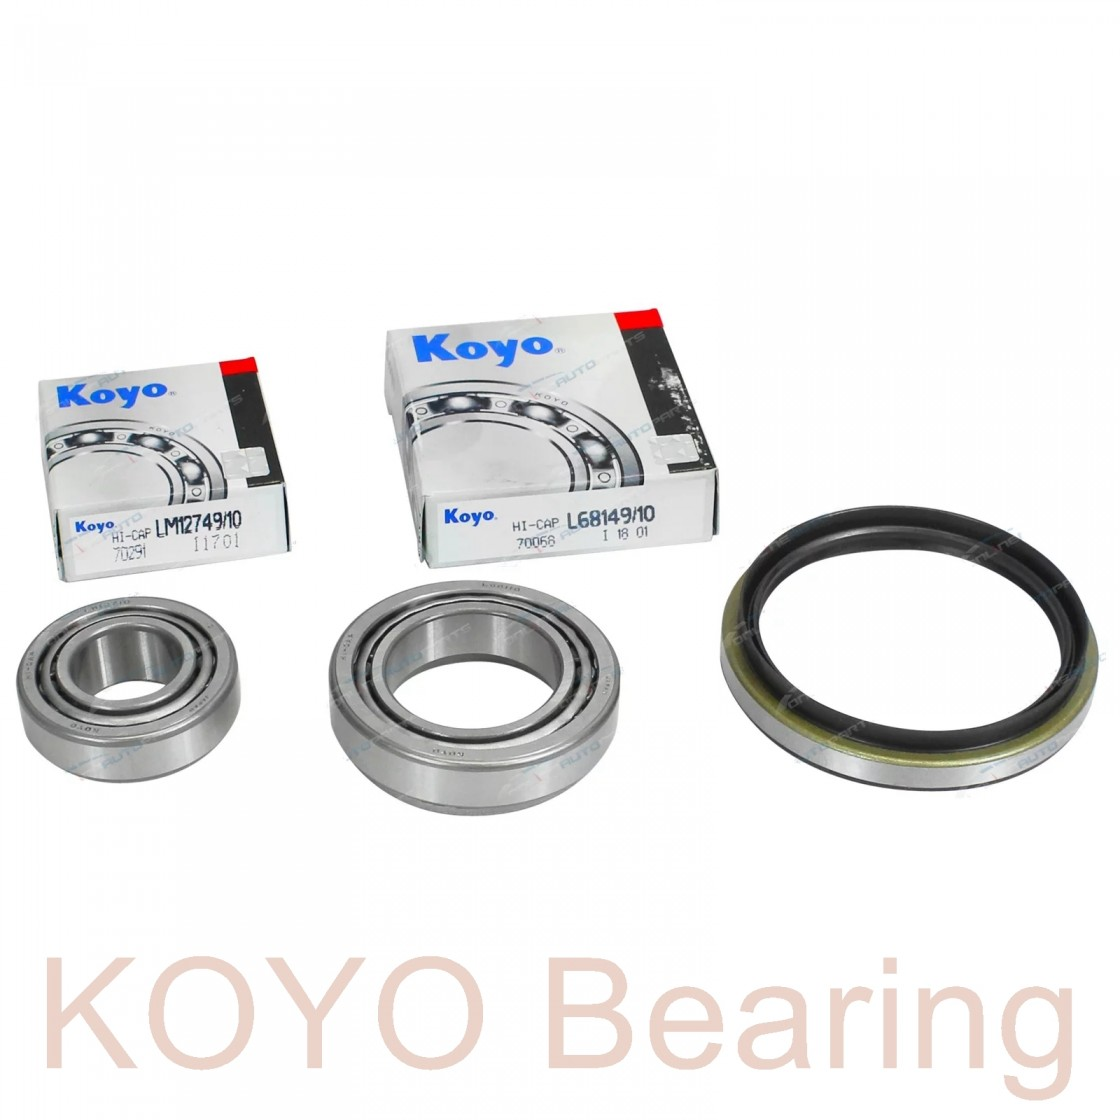 KOYO KDA042 angular contact ball bearings